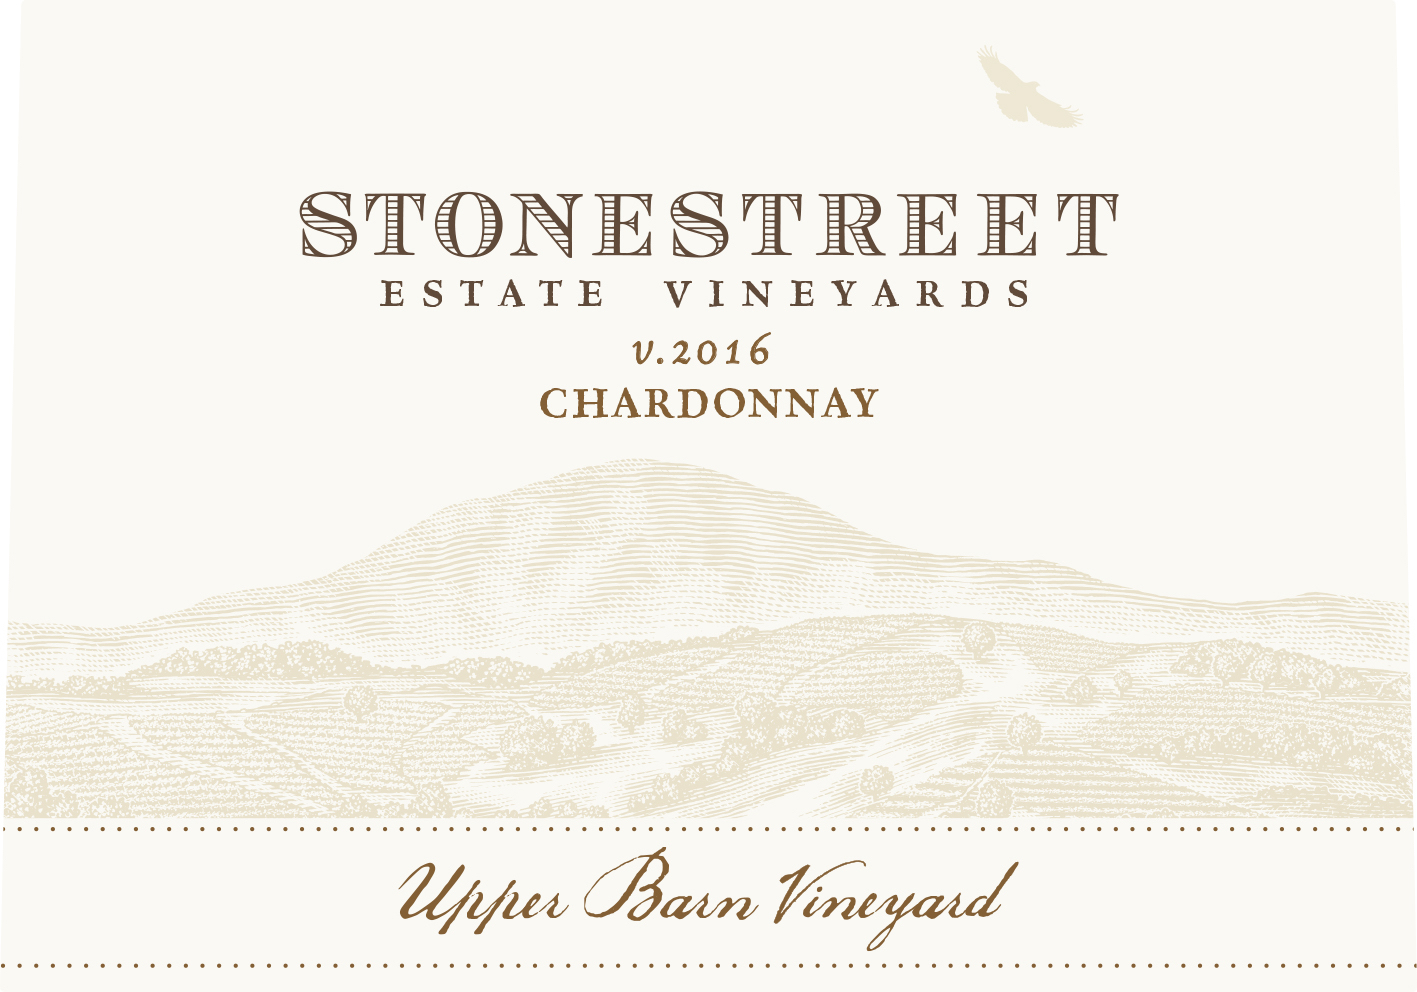 2014 Stonestreet Chardonnay Upper Barn Vineyard